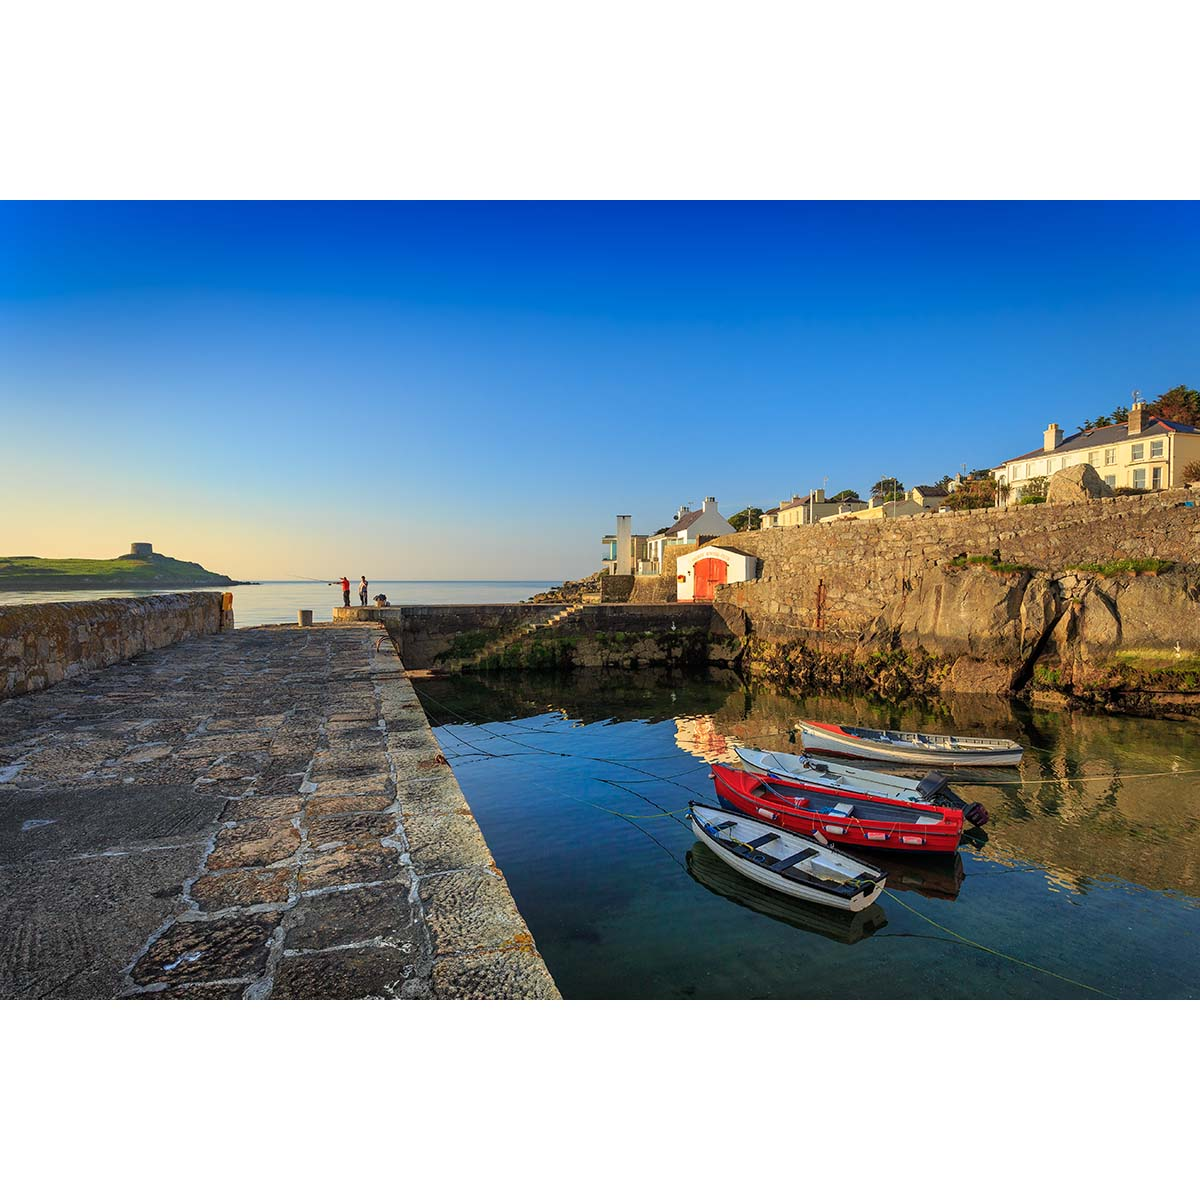 Coliemore Harbour Dalkey image copyright Robert Kelly